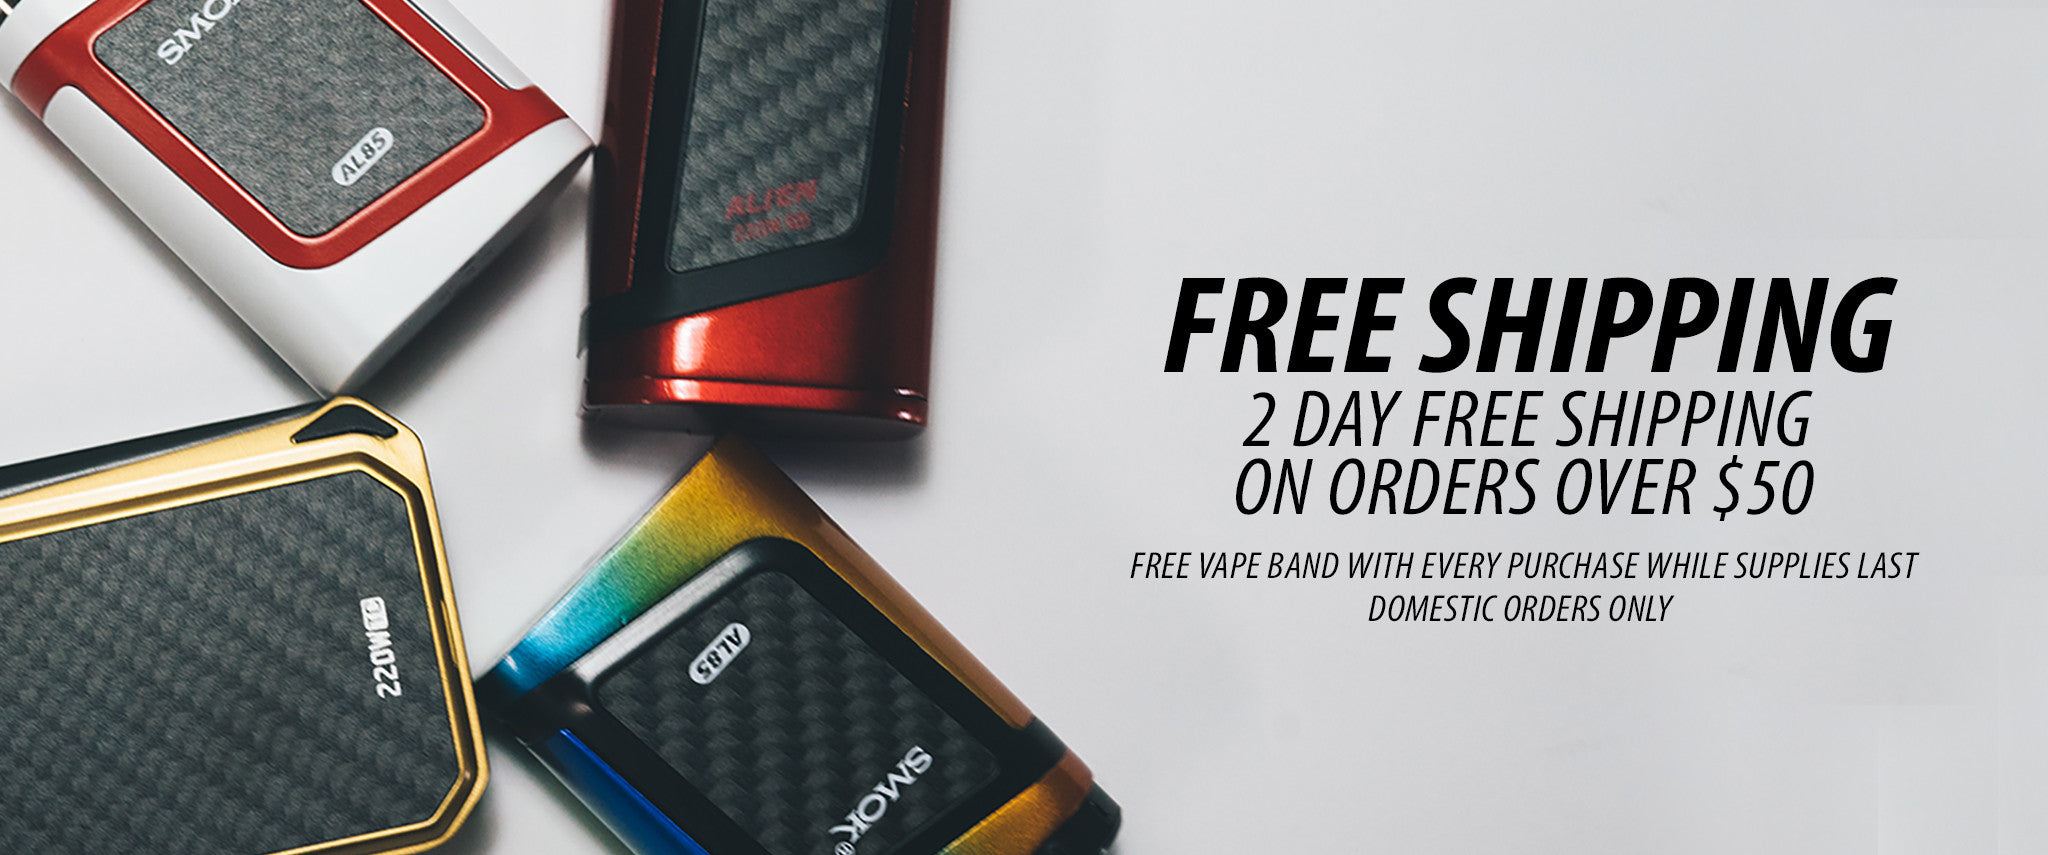 Free Shipping on orders over $50 | Vape Street